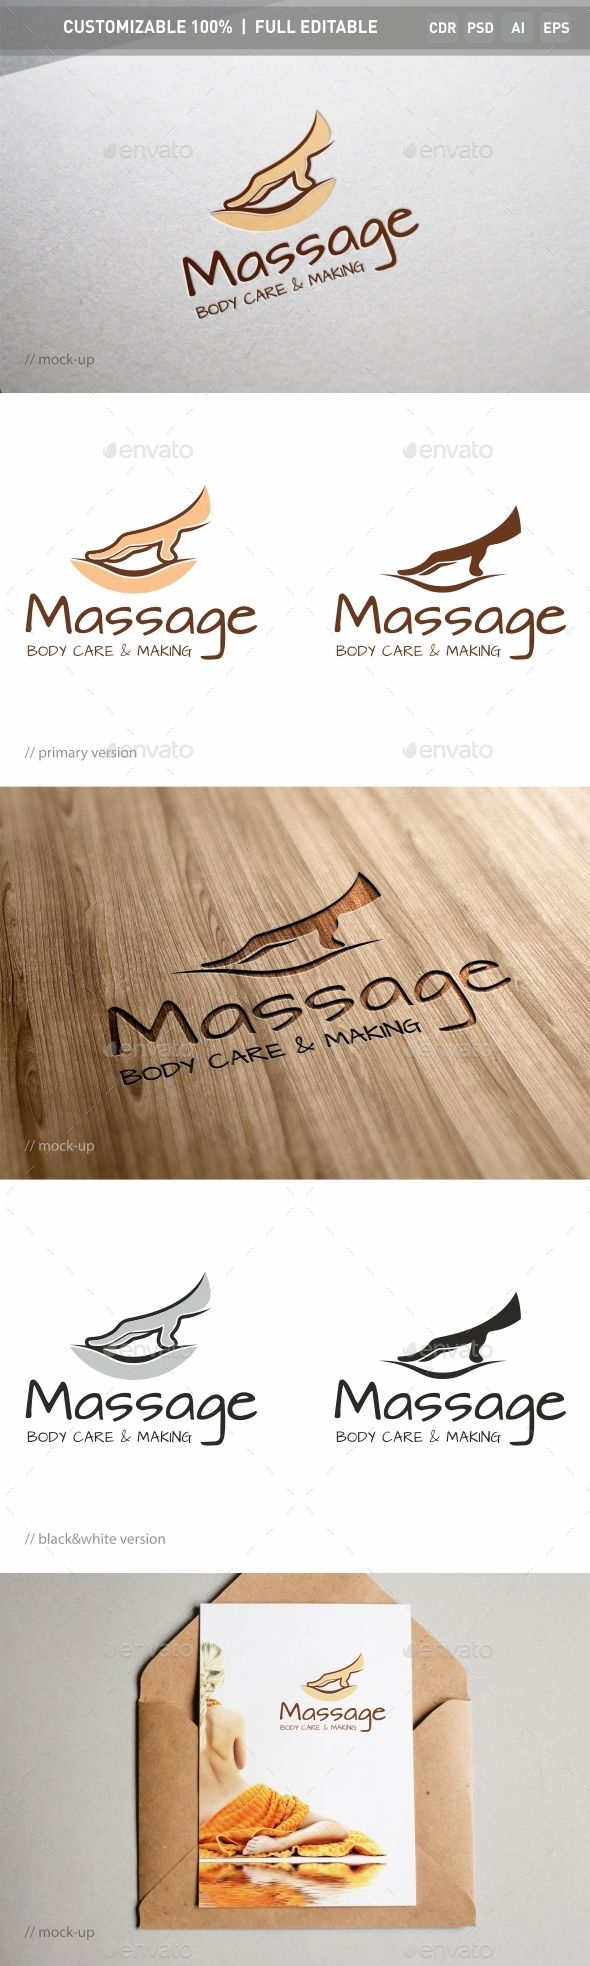 Massage Logo Template by ukido The logo is simple and graphic. Design is minimal